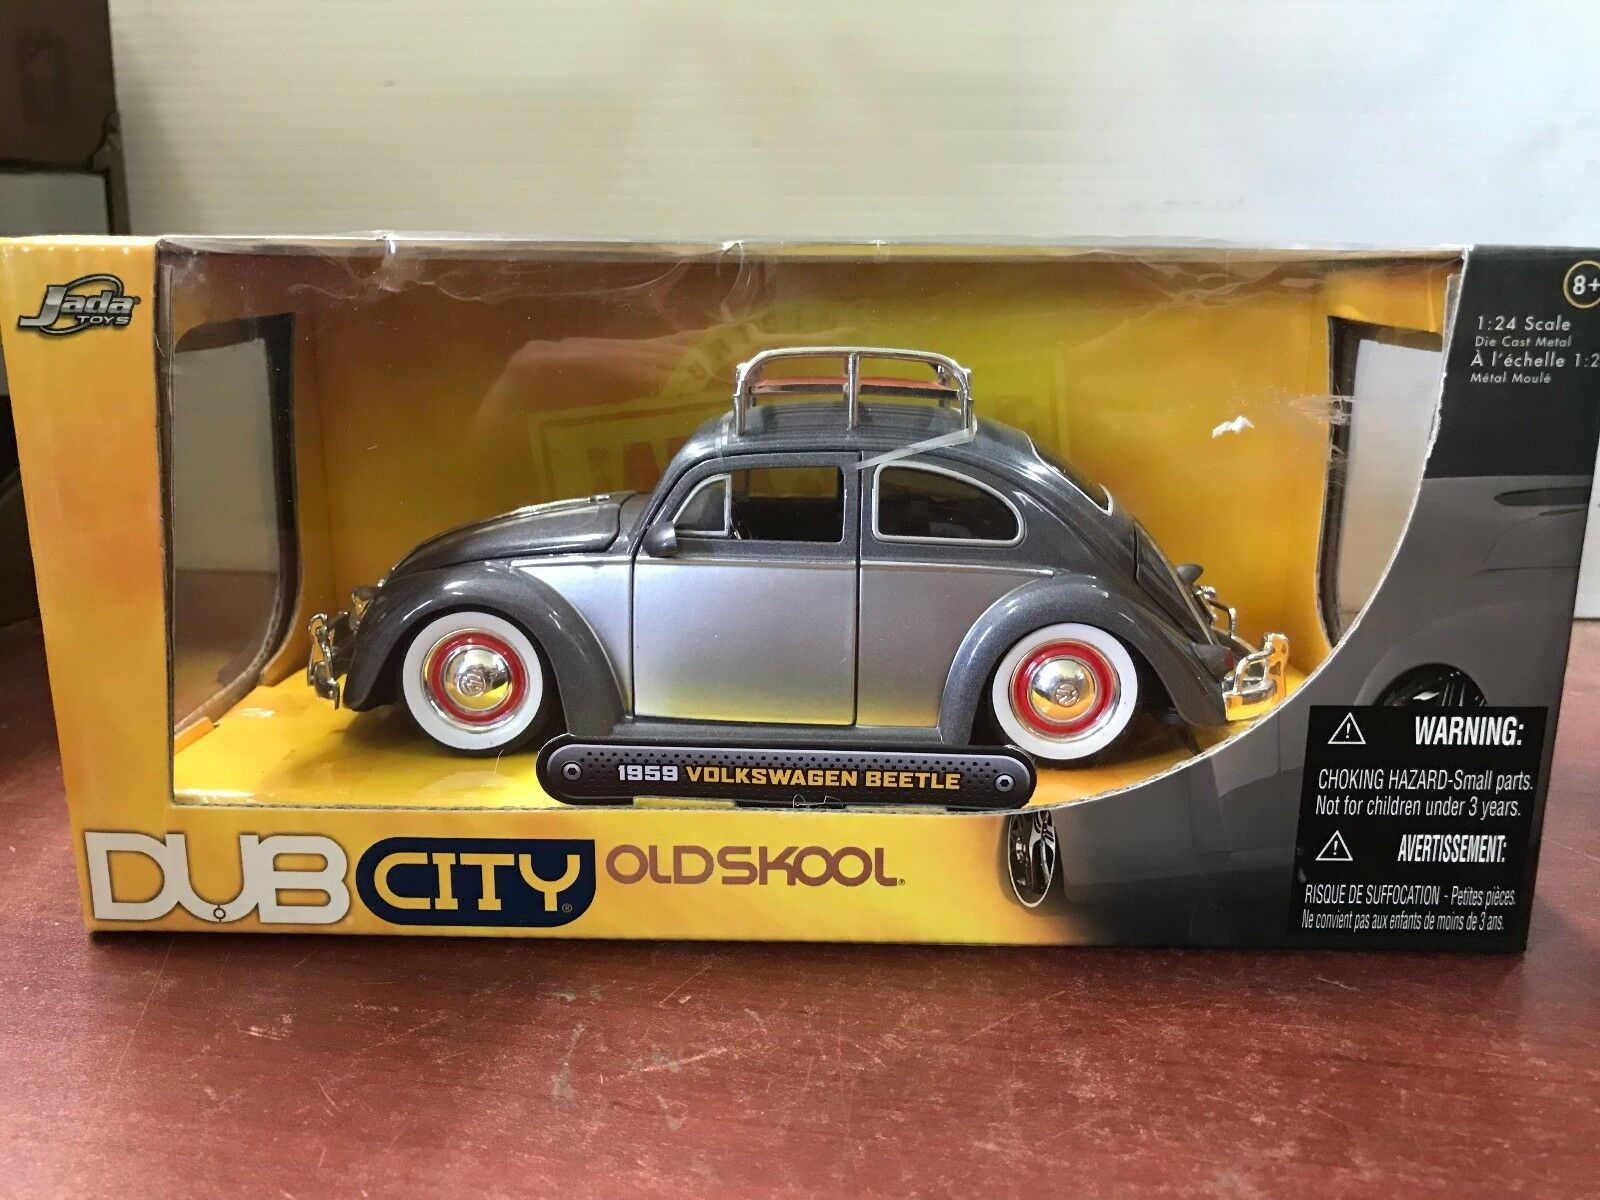 DIE CAST COLLECTIBLE DUB CITY  '59 VOLKSWAGEN BEETLE COLLECTION 1 24